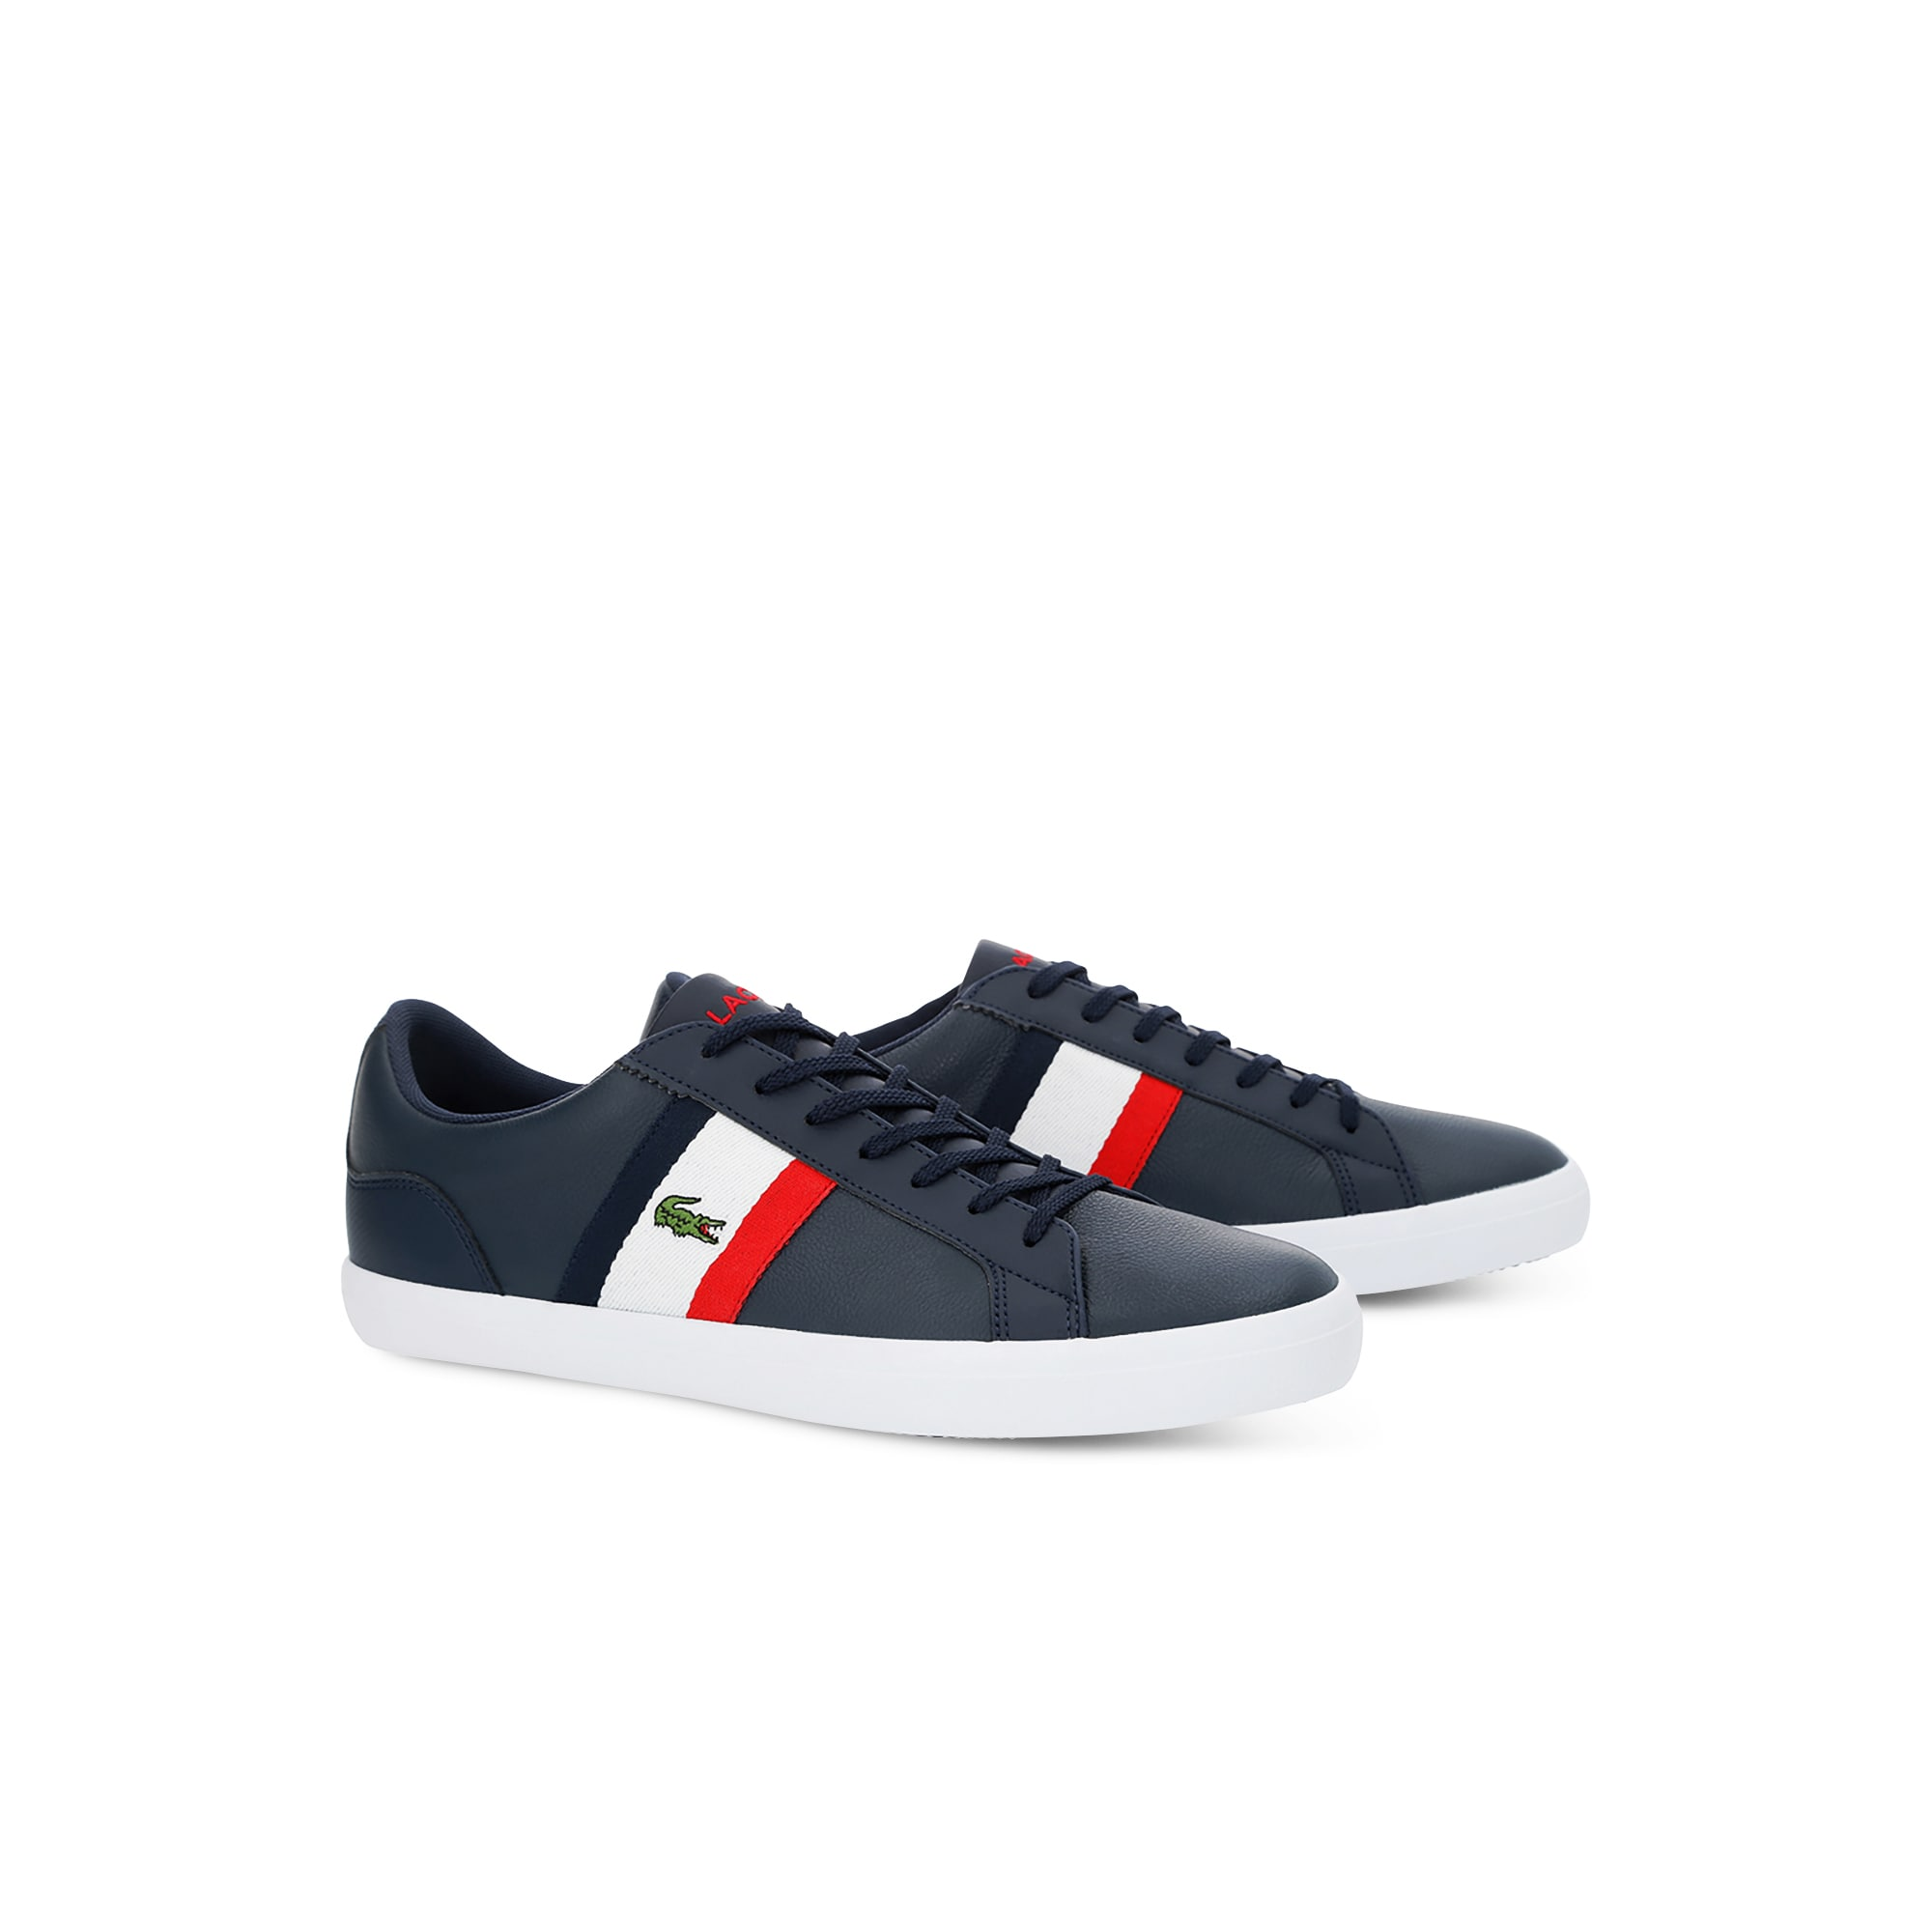 Men's Lerond Tumbled Leather Sneakers